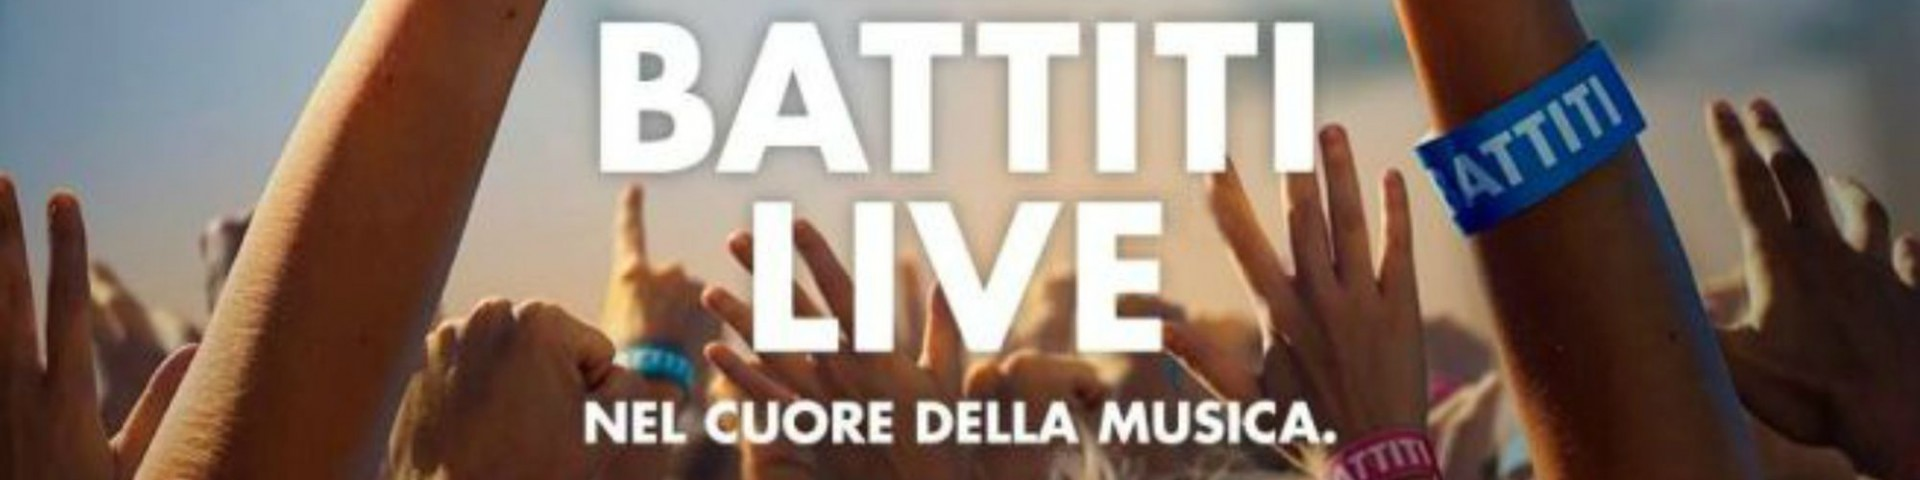 Battiti Live 2019 su Italia 1 da Bari: scaletta e streaming